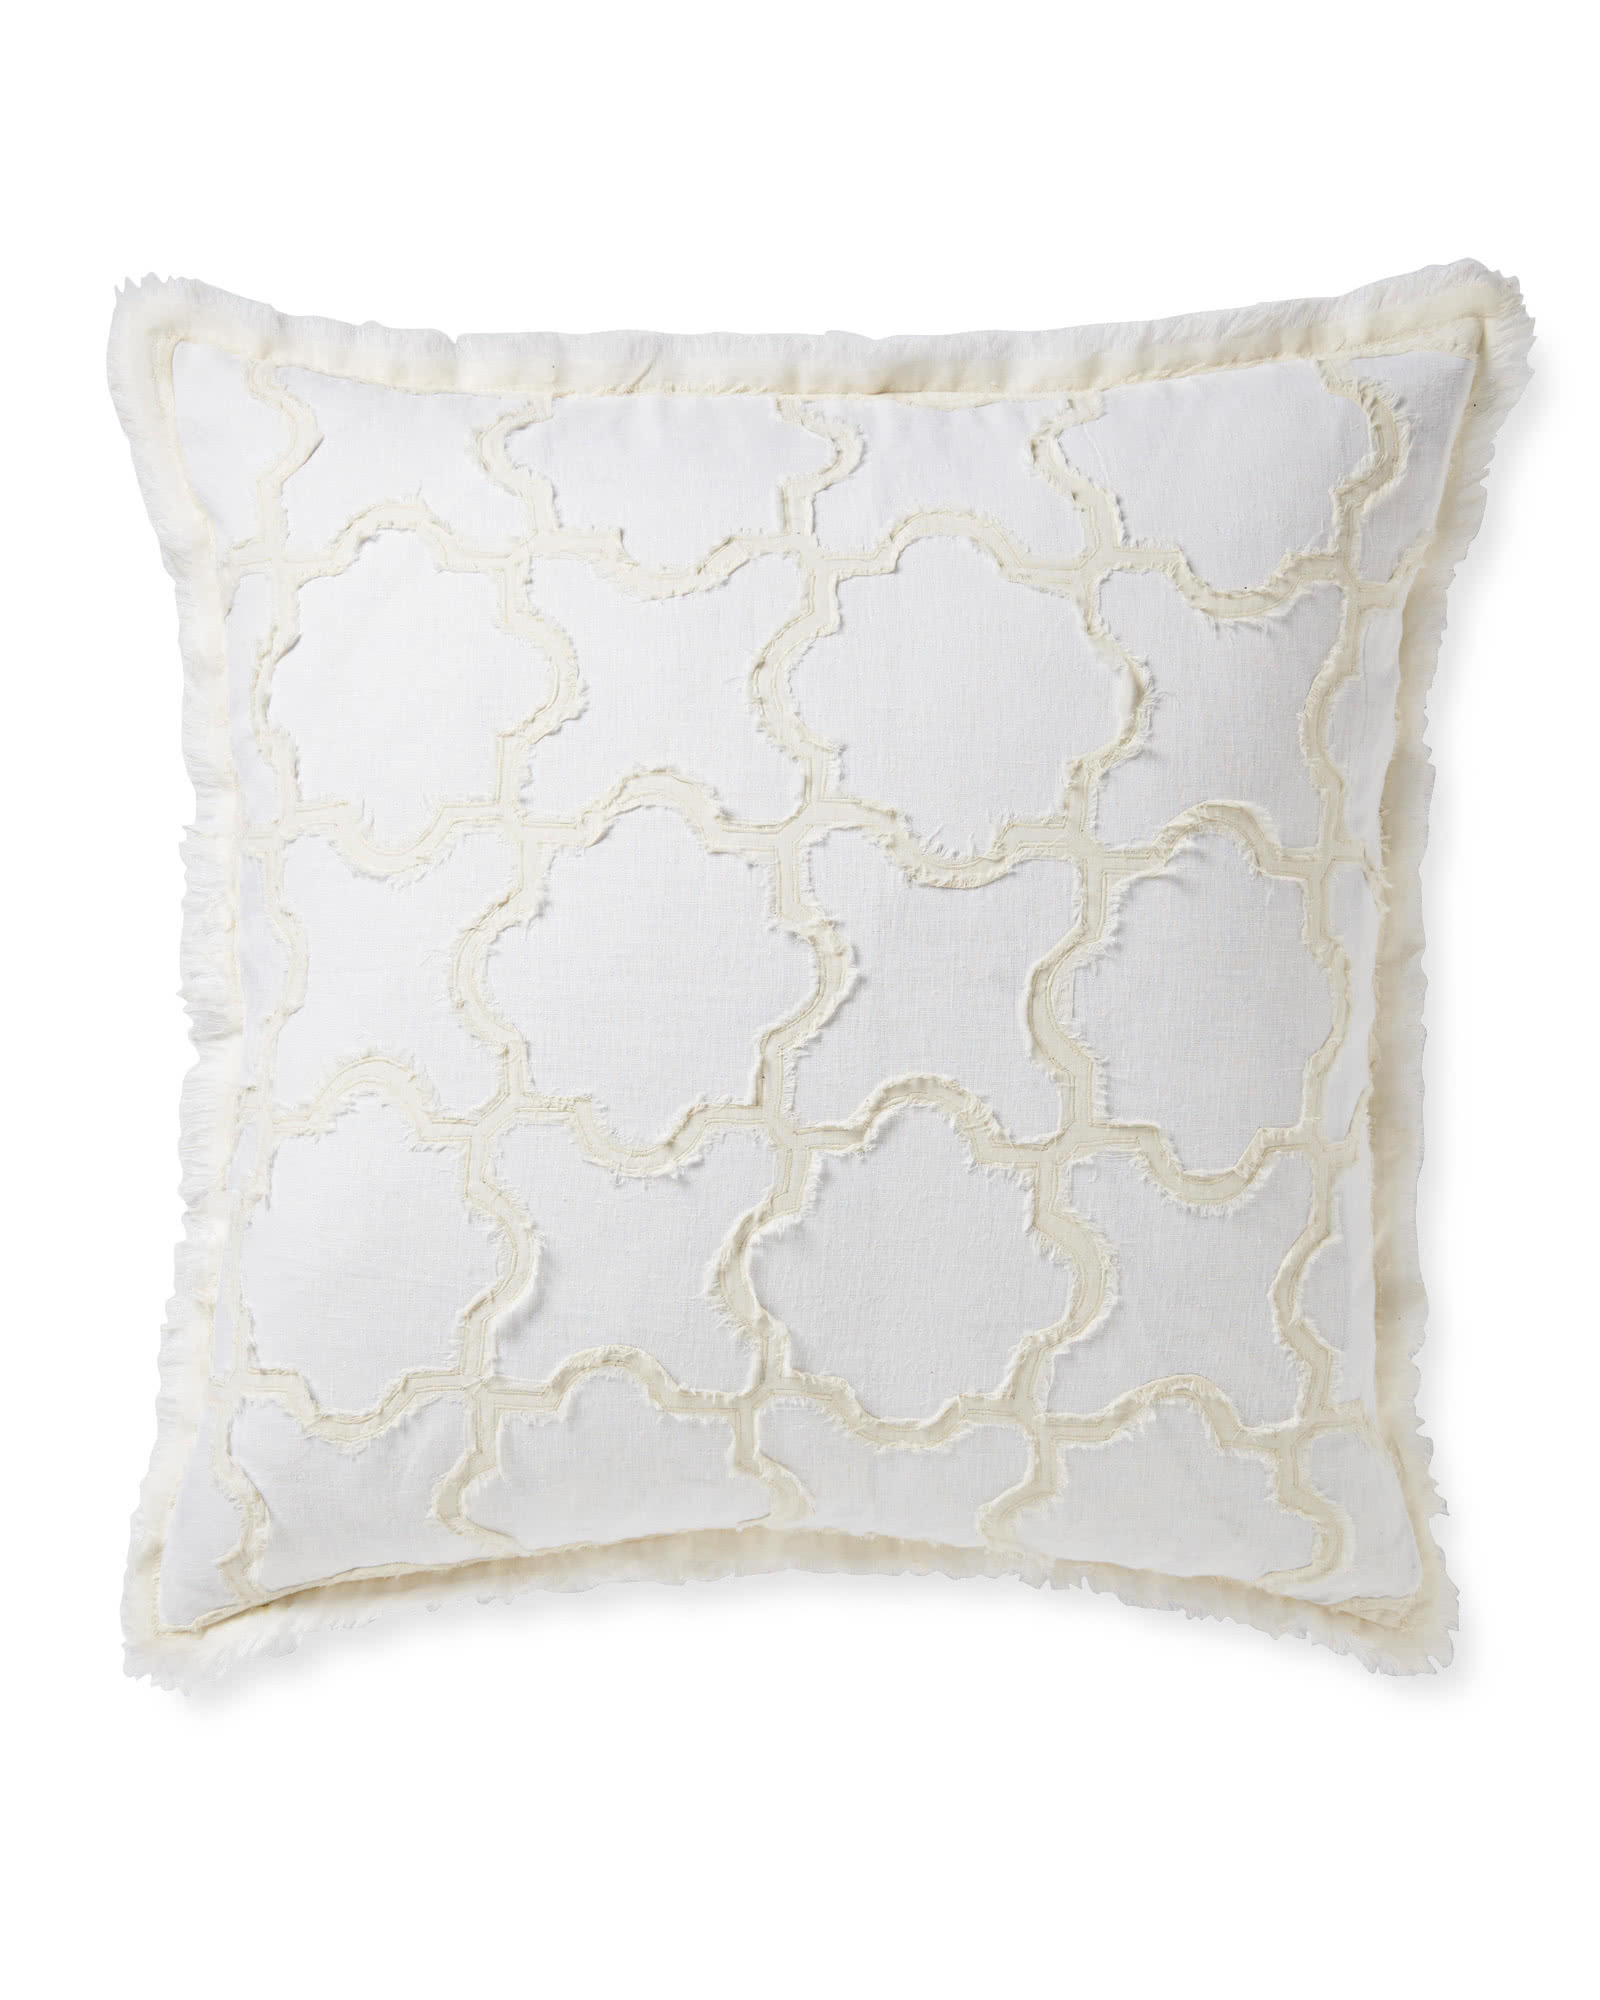 Barcelona Pillow Cover Serena & Lily